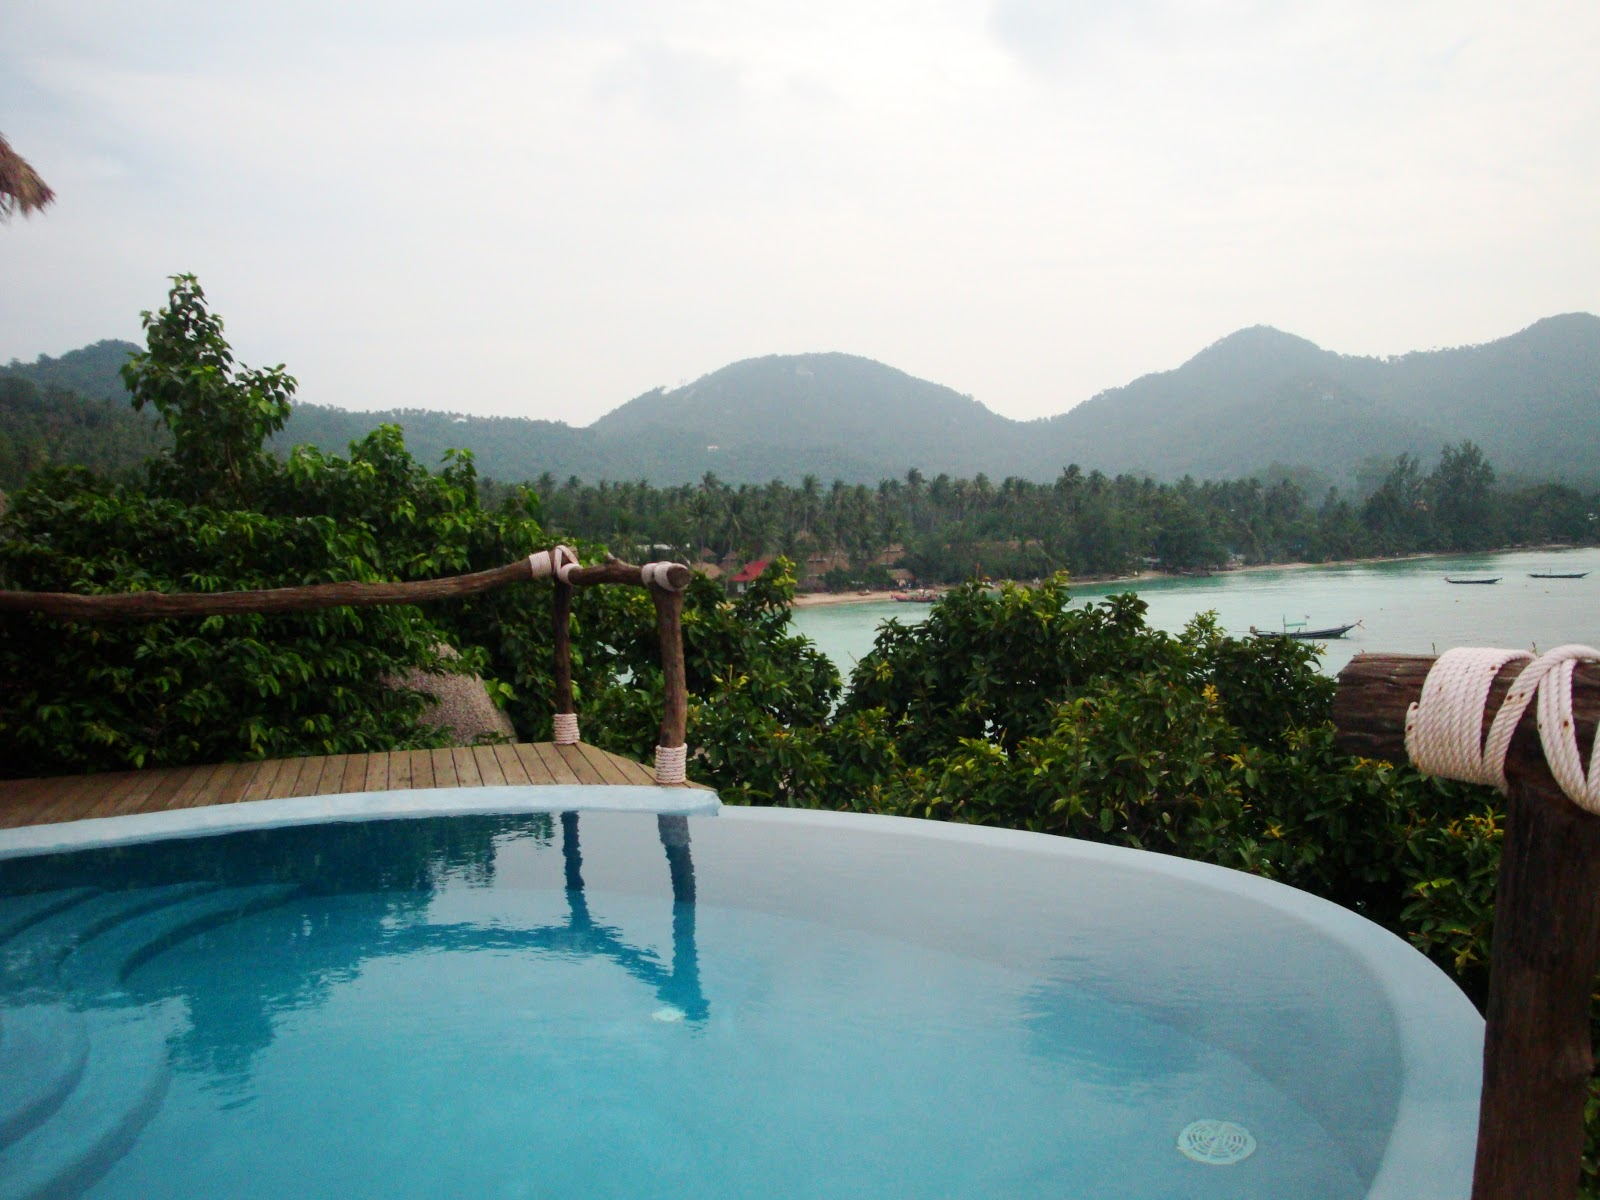 Today I like blog: TODAY I LIKE ··· KOH TAO CABANA HOTEL IN THAILAND